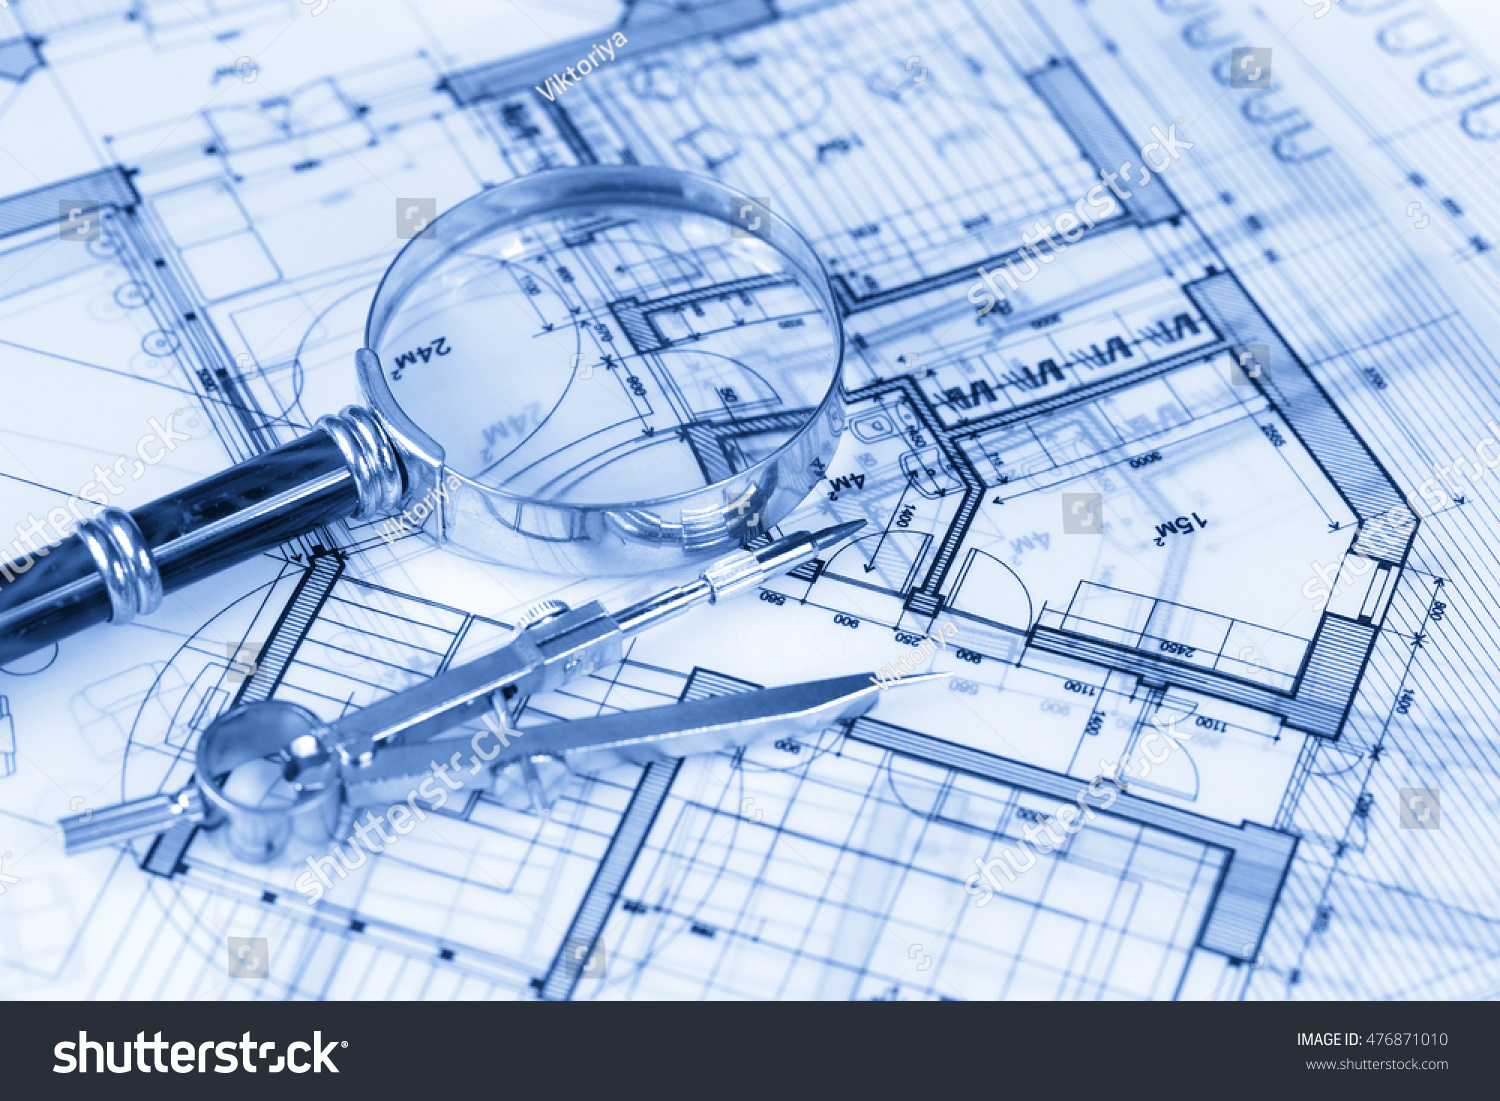 Royalty free architecture blueprint house plans for Architecture blueprints free